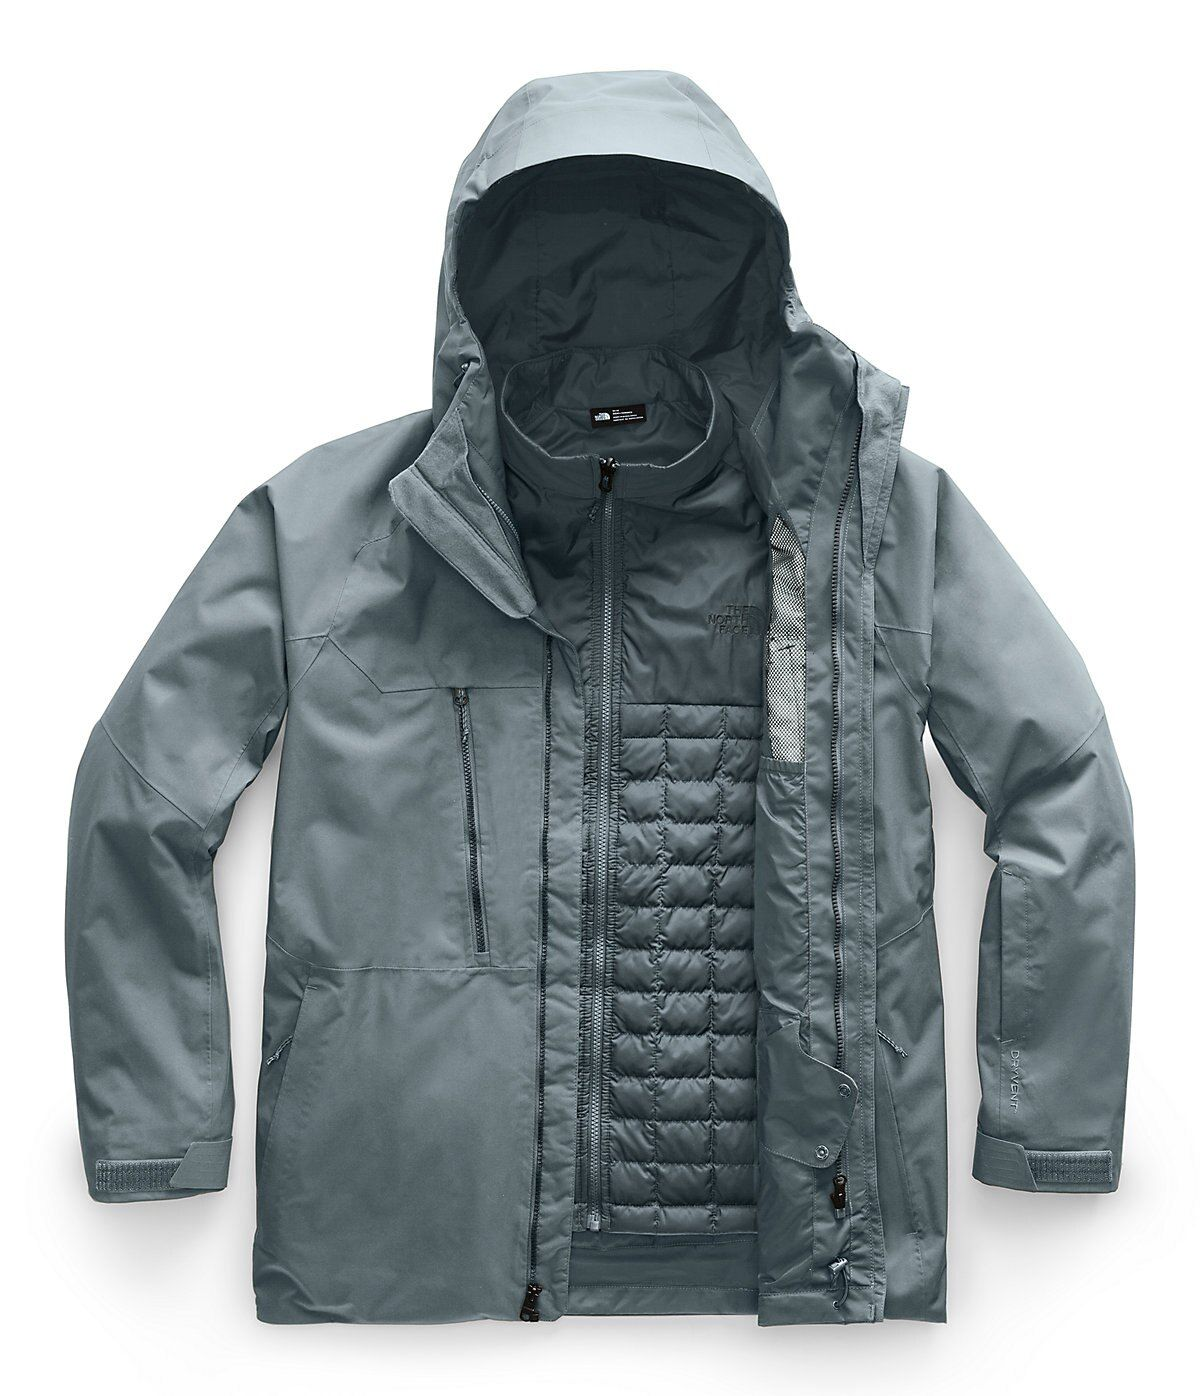 Men S Thermoball Eco Snow Triclimate The North Face Triclimate Jacket North Face Mens Jackets [ 1396 x 1200 Pixel ]